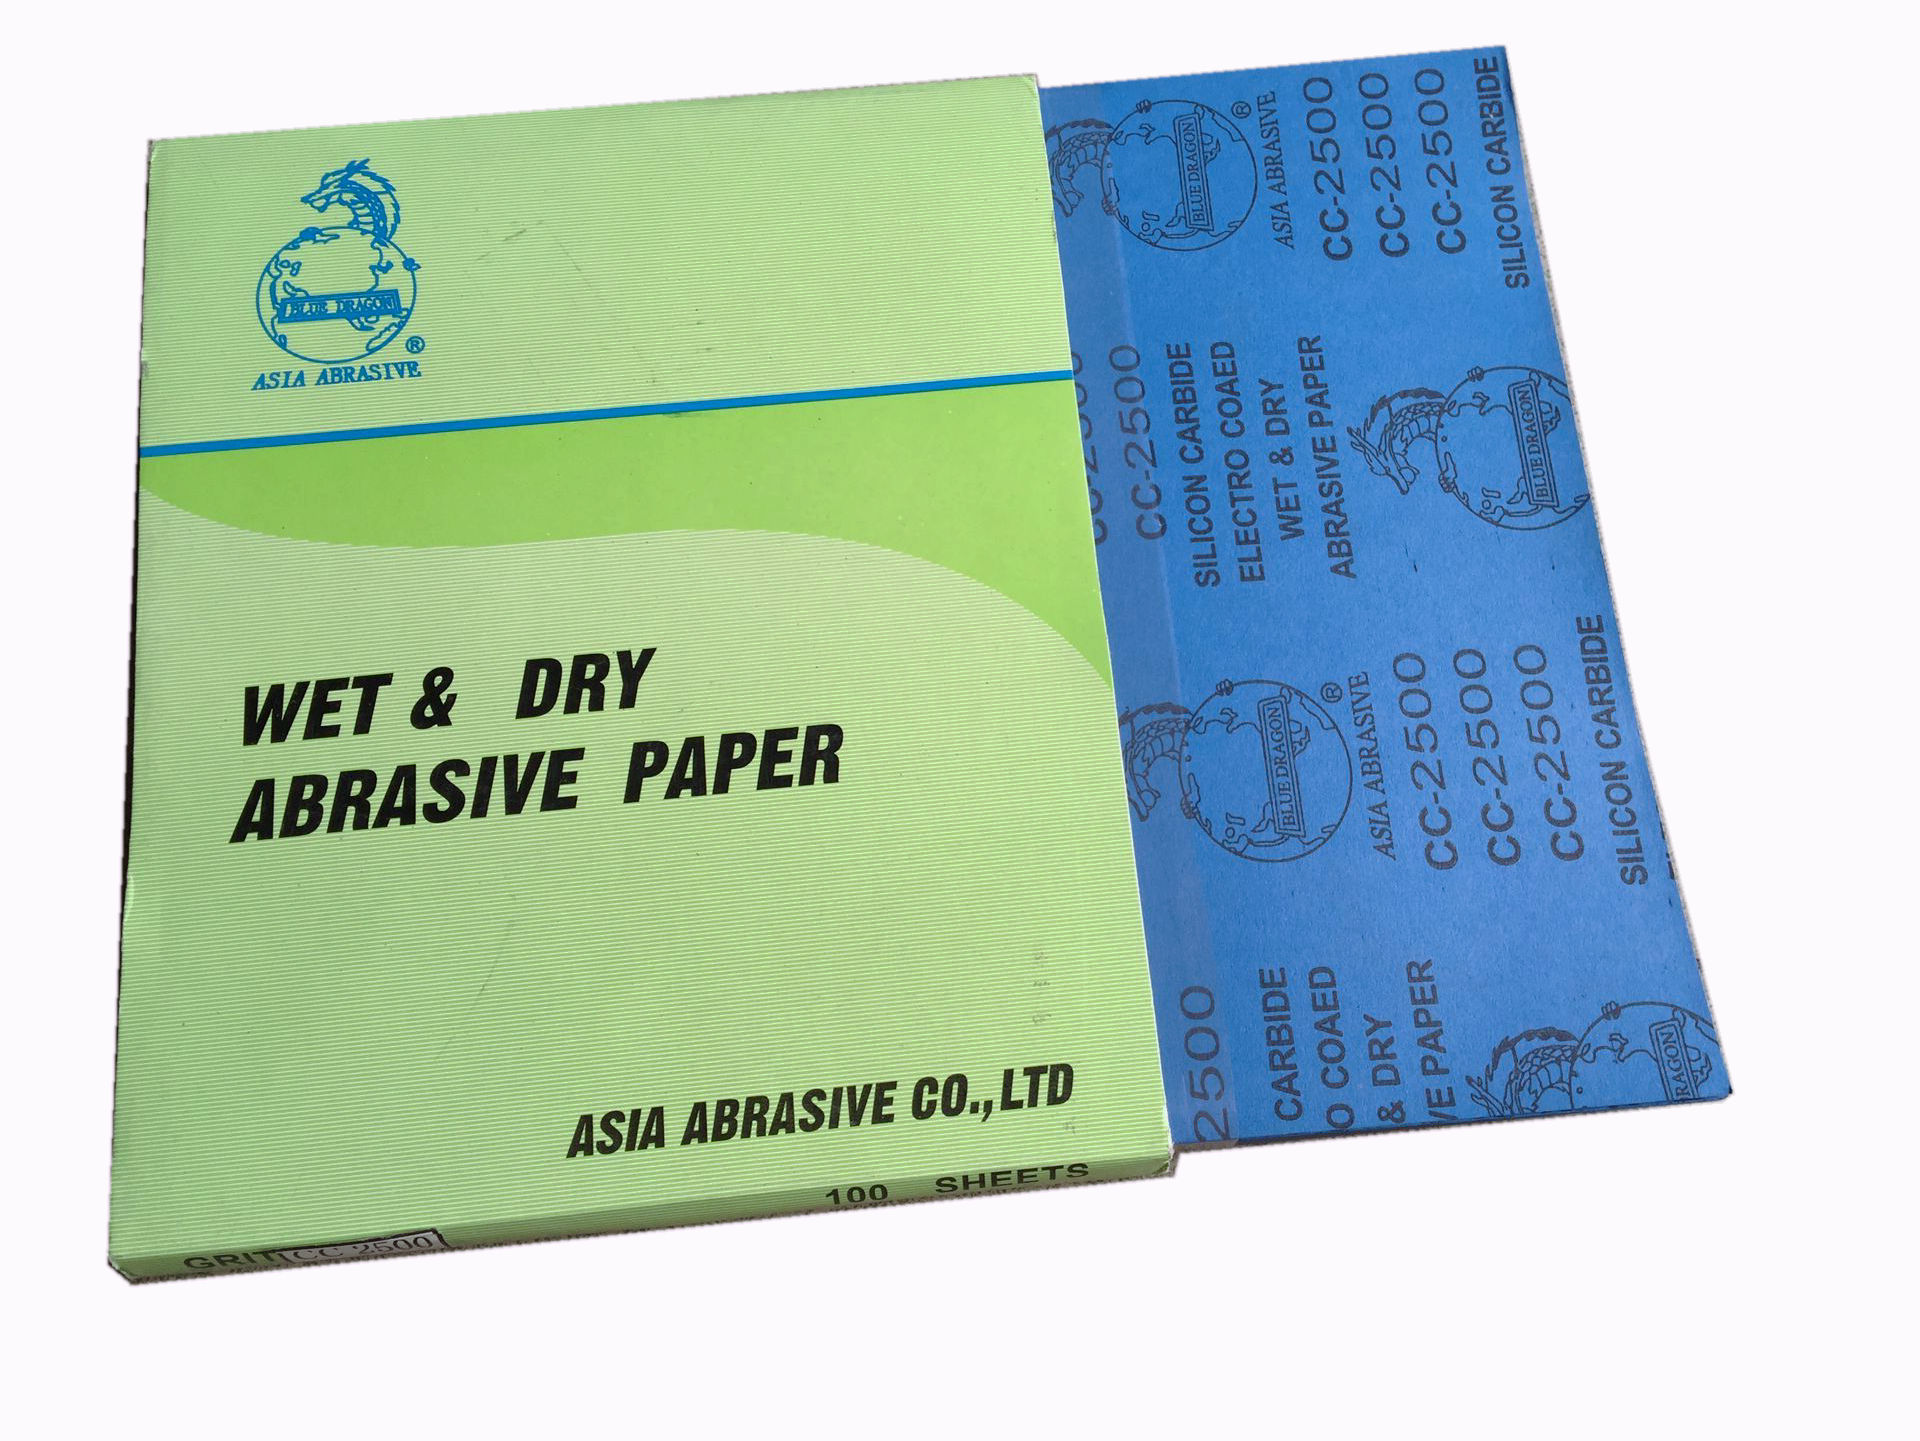 Qinglong Brand Waterproof Abrasive Paper Dragons Sandpaper Waterproof Abrasive Paper Carborundum Waterproof Abrasive Paper 2500